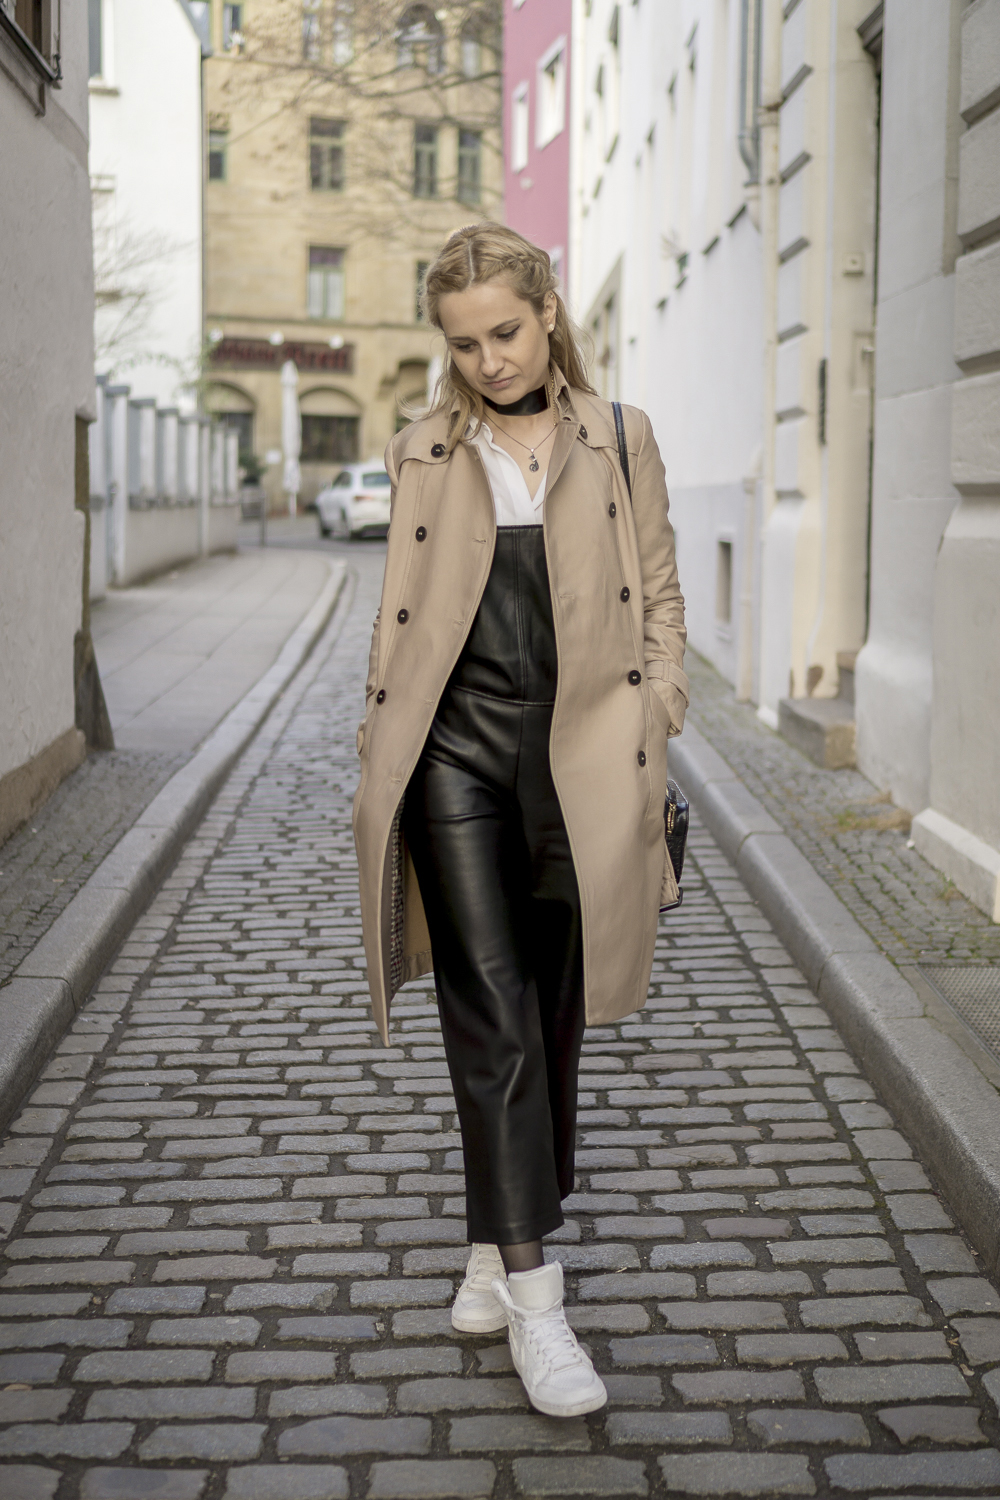 wearing beige trench coat from zara, mango leather dungrees. OOTD outfit look